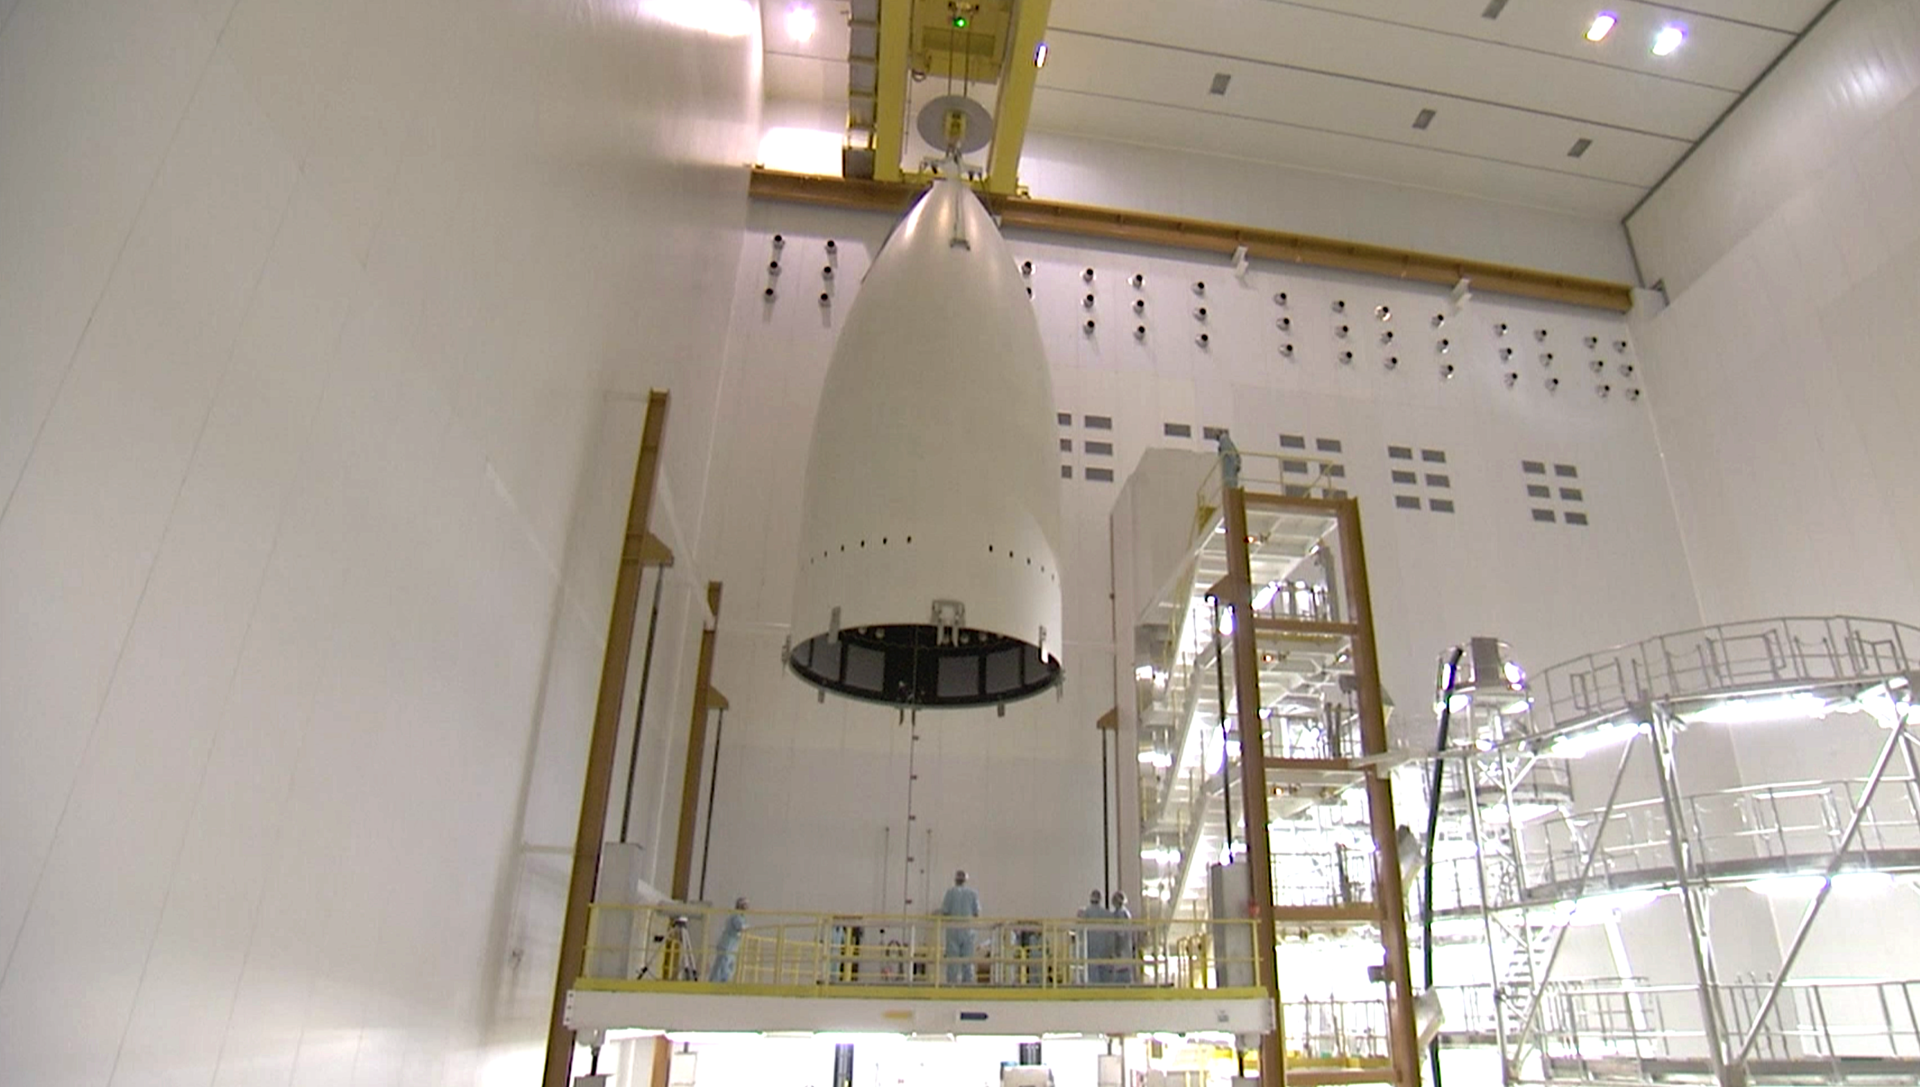 Four-panel fairing for Ariane 5